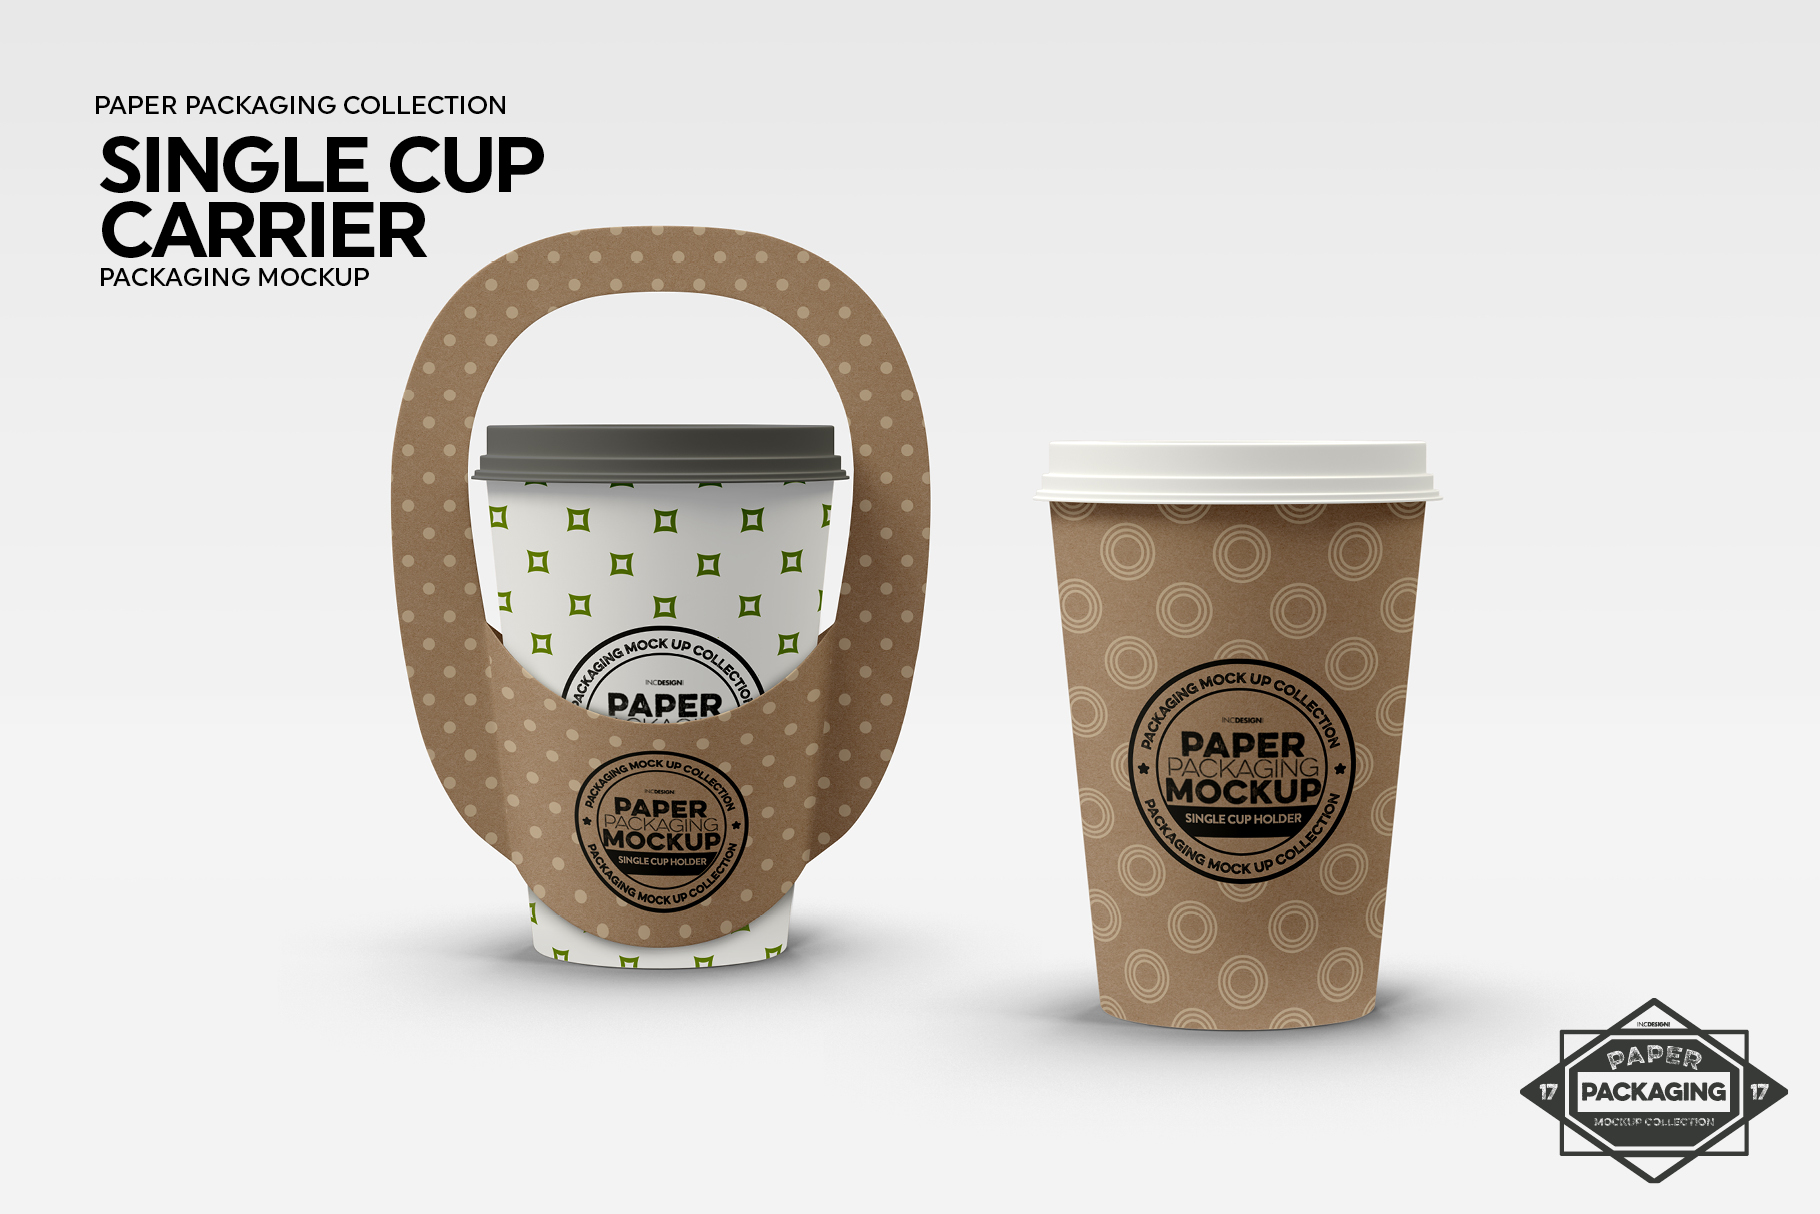 Single Cup Paper Carrier Packaging Mockup example image 5